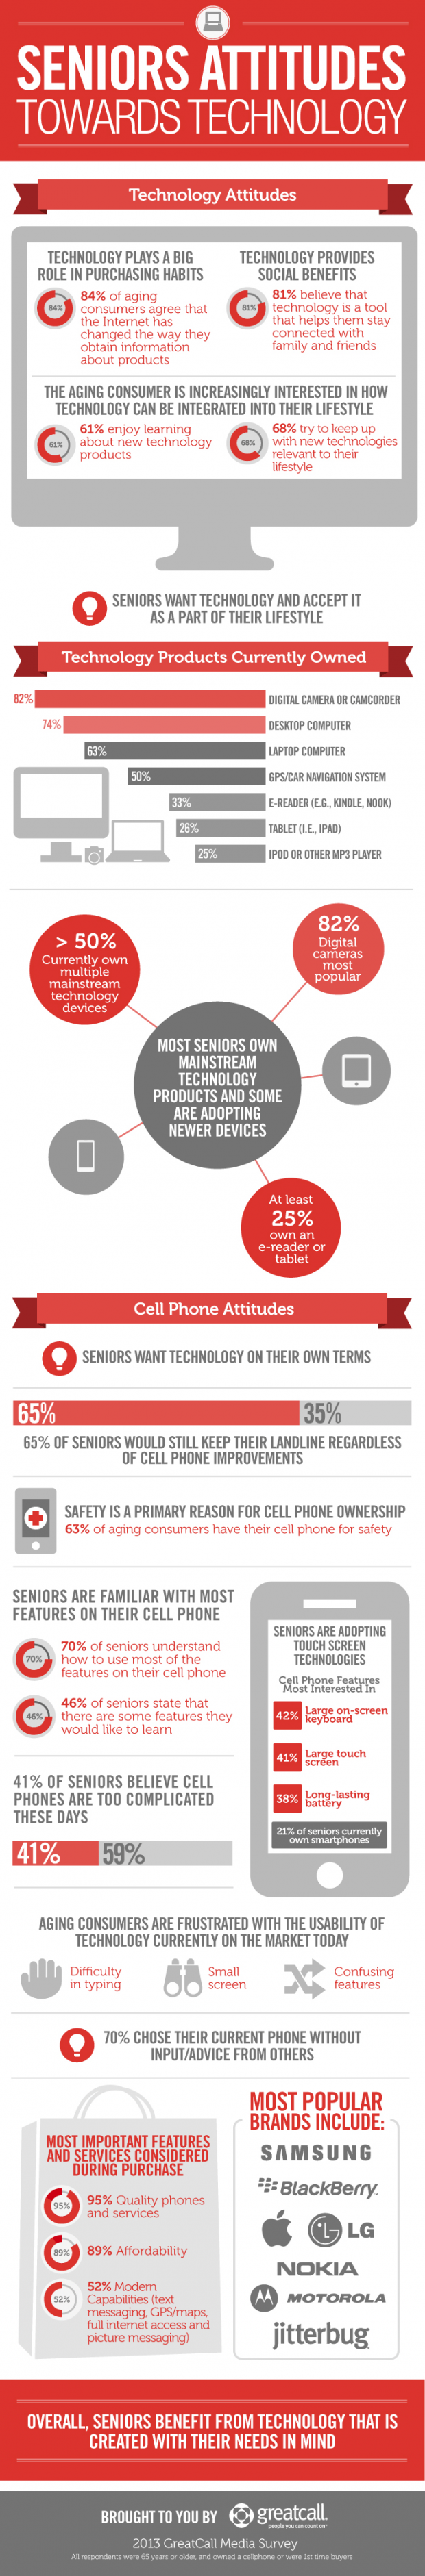 seniors-attitudes-towards-technology-infographic